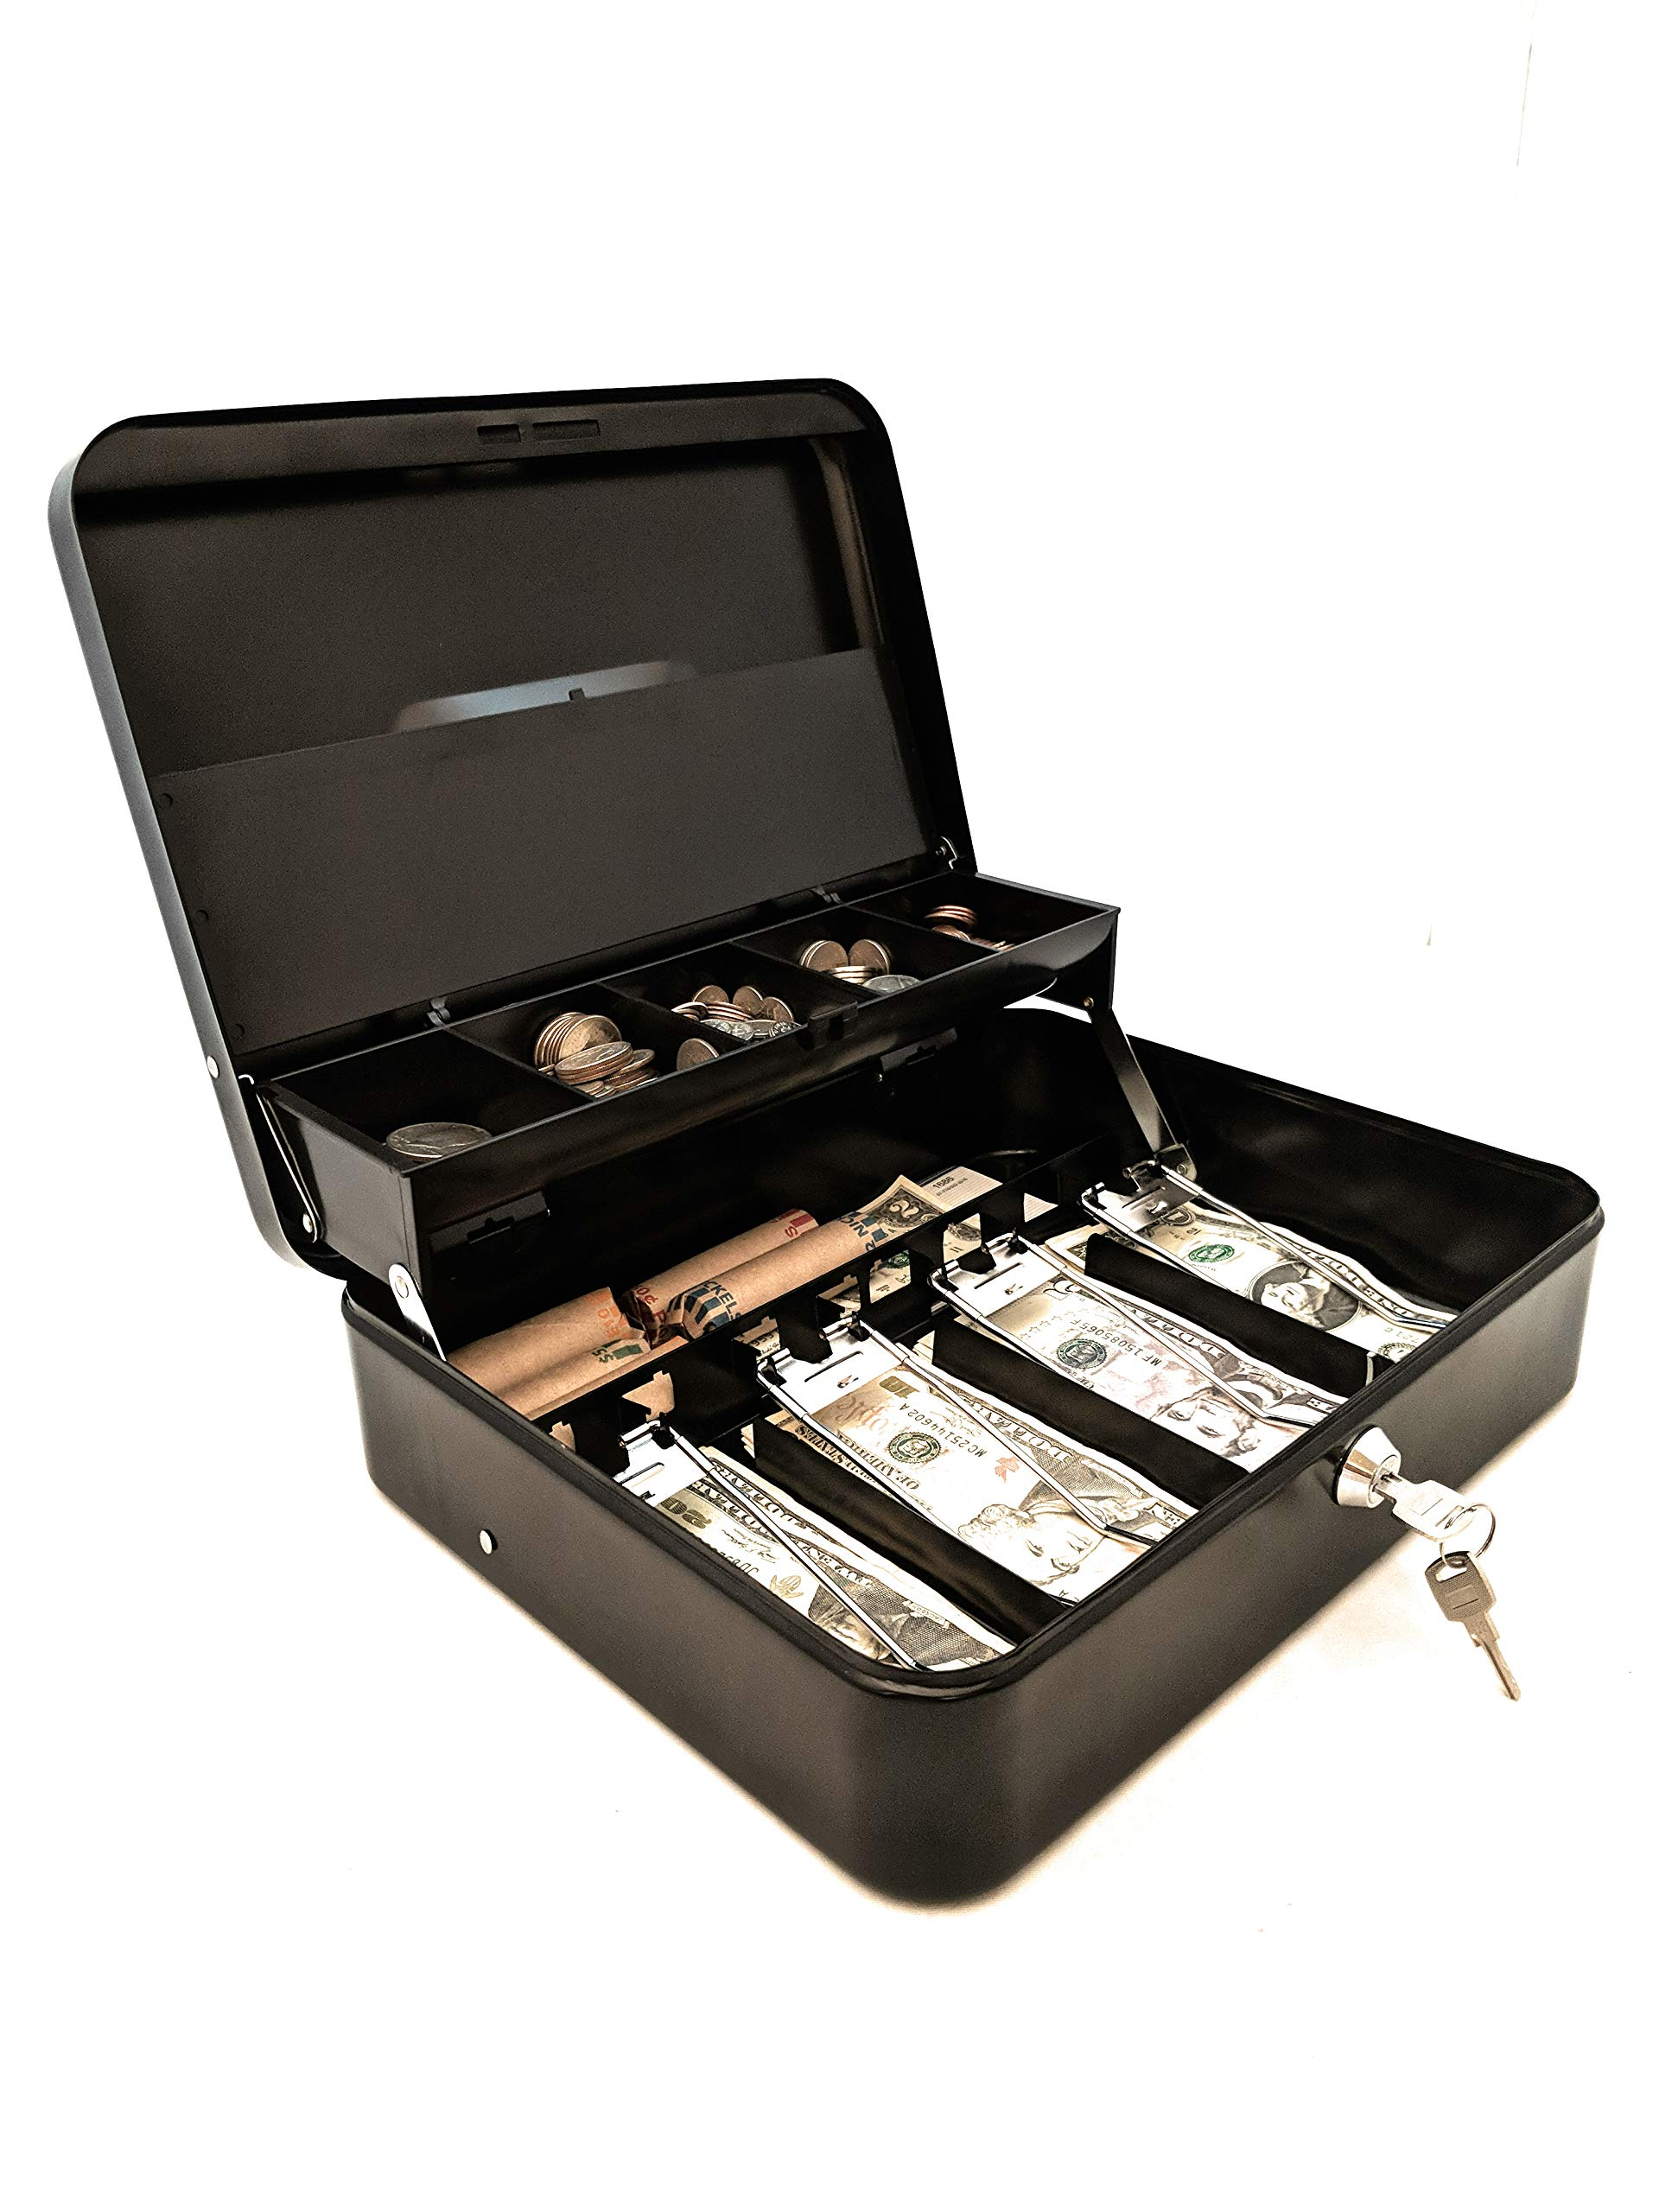 Cash Box | Portable Money Box | Petty Cash | Keyed | Coin Tray with Lid | Extra Storage for Rolled Coins, Checks and Other Valuables by This Keeps That Safe